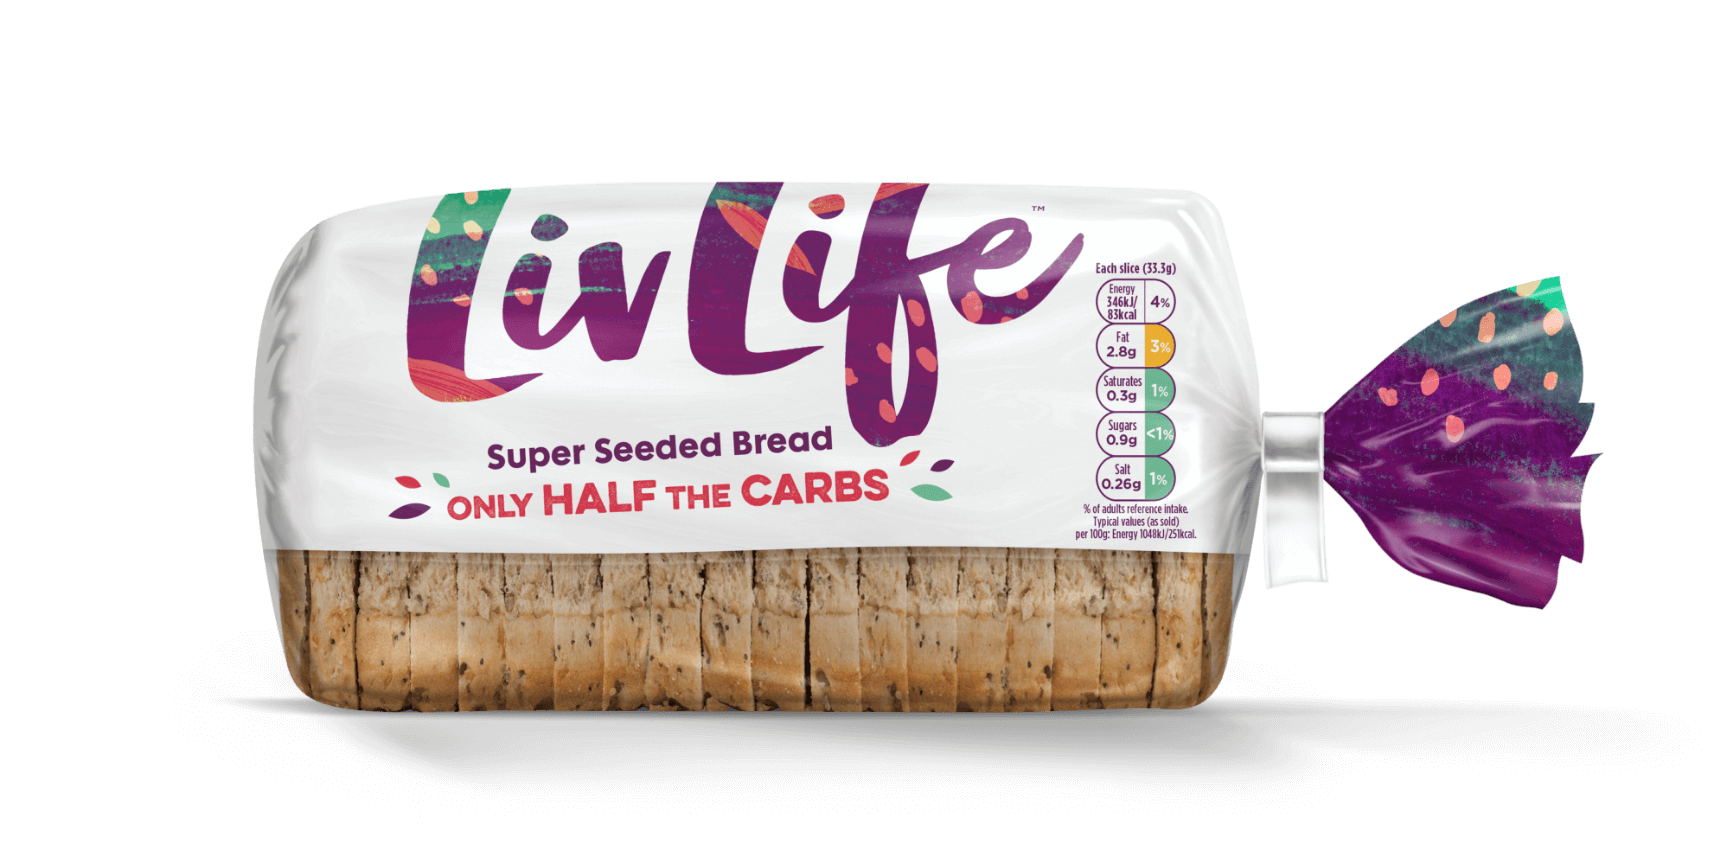 Livelife packaging